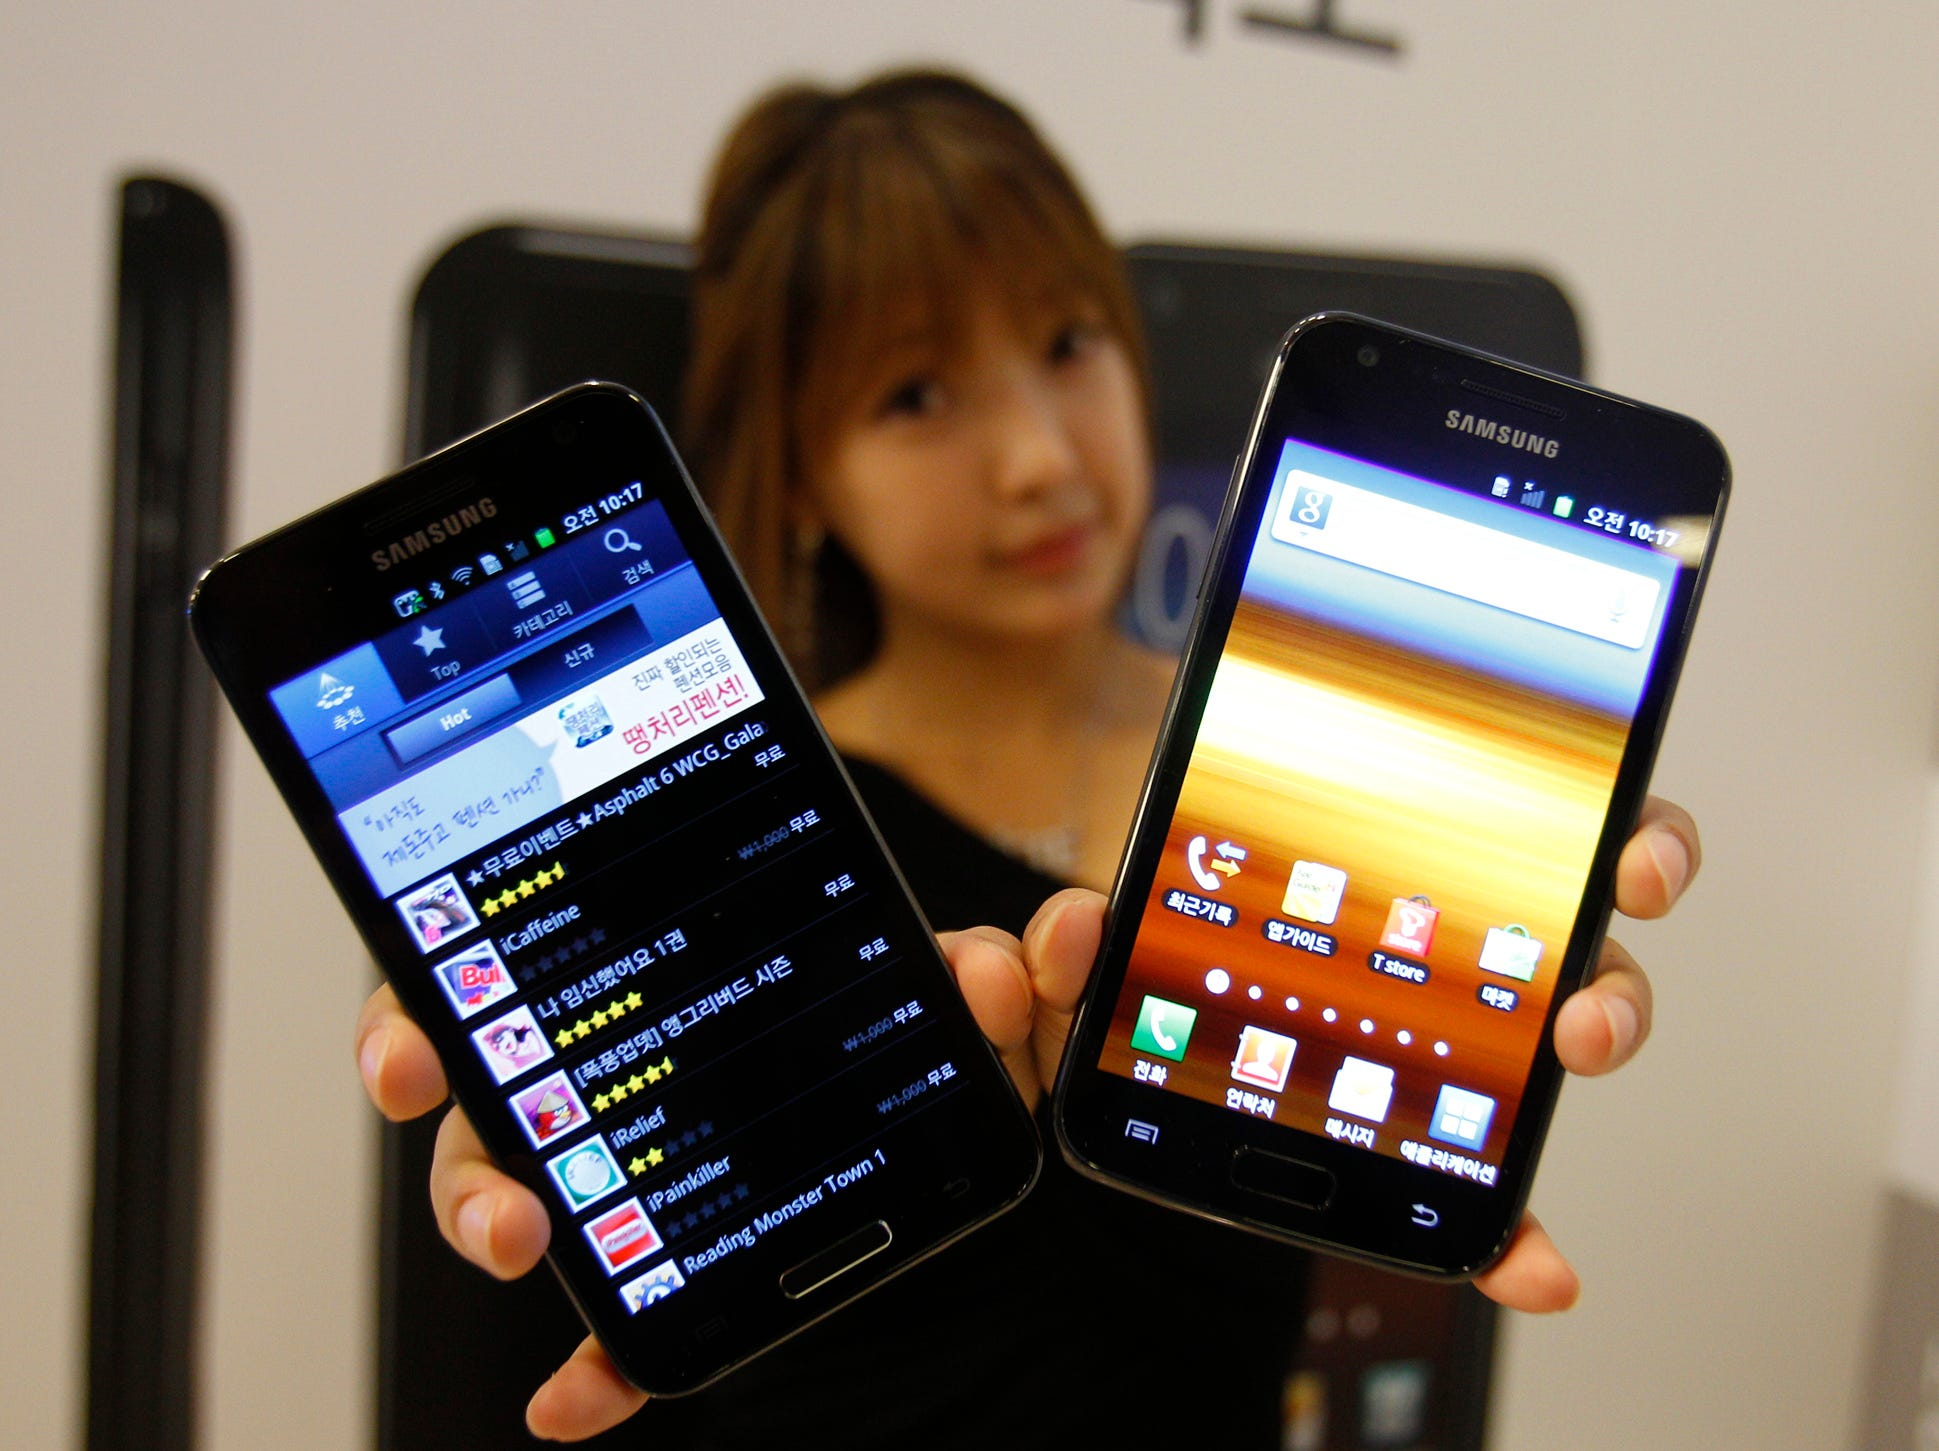 A model poses with Samsung Electronics' new smart phones Galaxy S II LTE, right, which features the 4.5-inch Super Amoled Plus screen and runs on Android 2.3, and Galaxy S II HD LTE, which features the 4.65 HD Super Amoled screen, during its unveiling ceremony in Seoul, South Korea, Monday, Sept. 26, 2011. The non-4G LTE Galaxy S II had a 4.3-inch display.